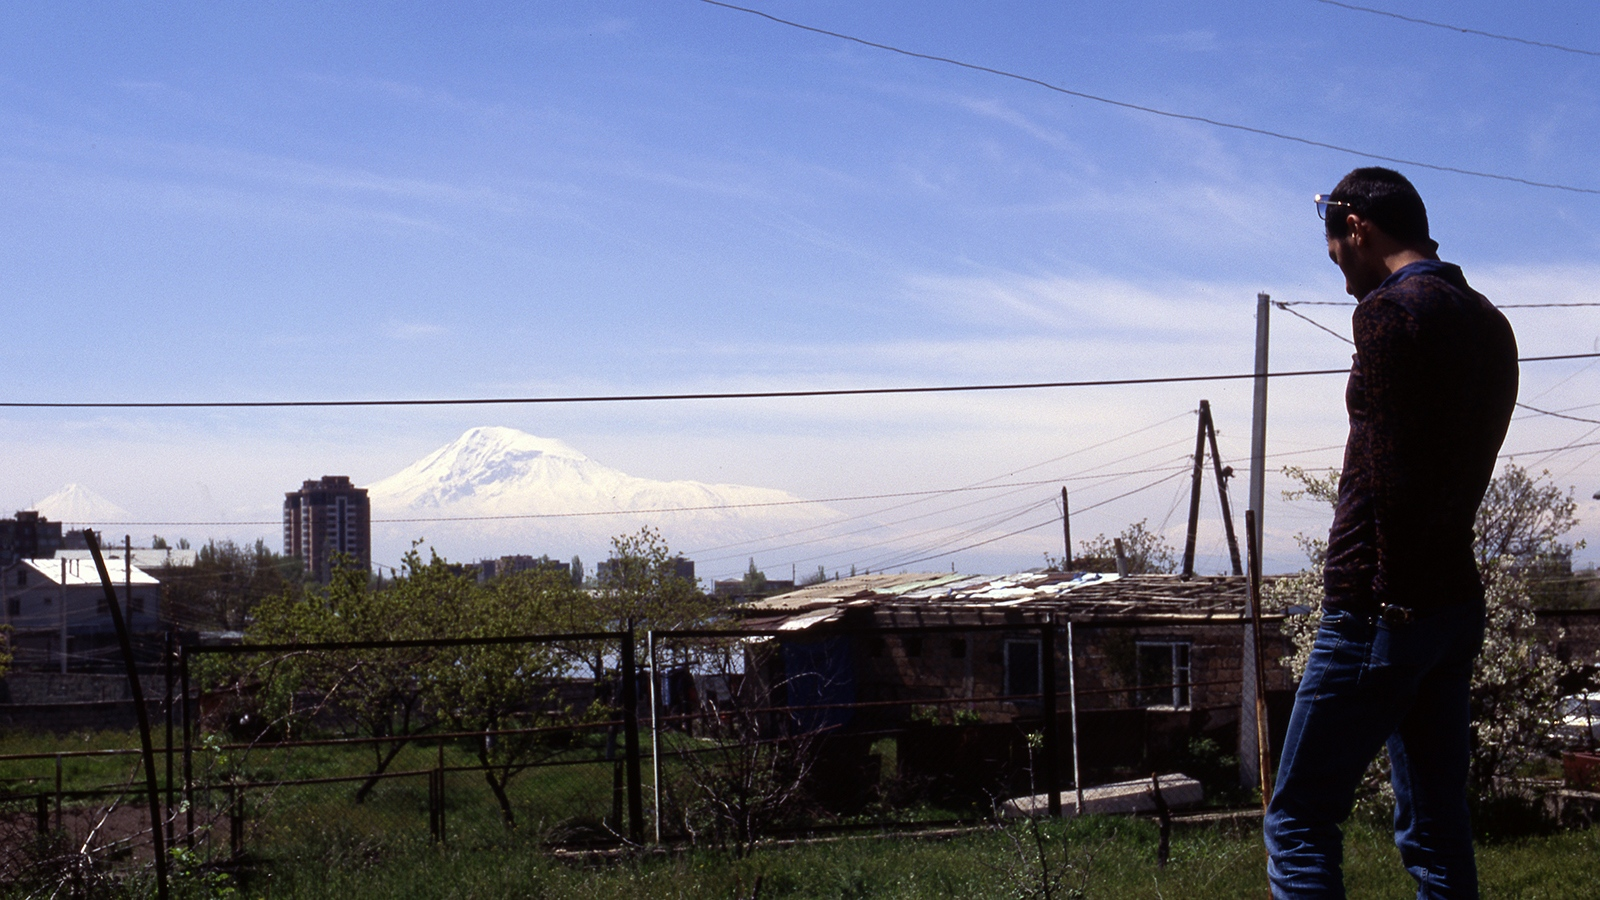 Ararat from outer Yerevan